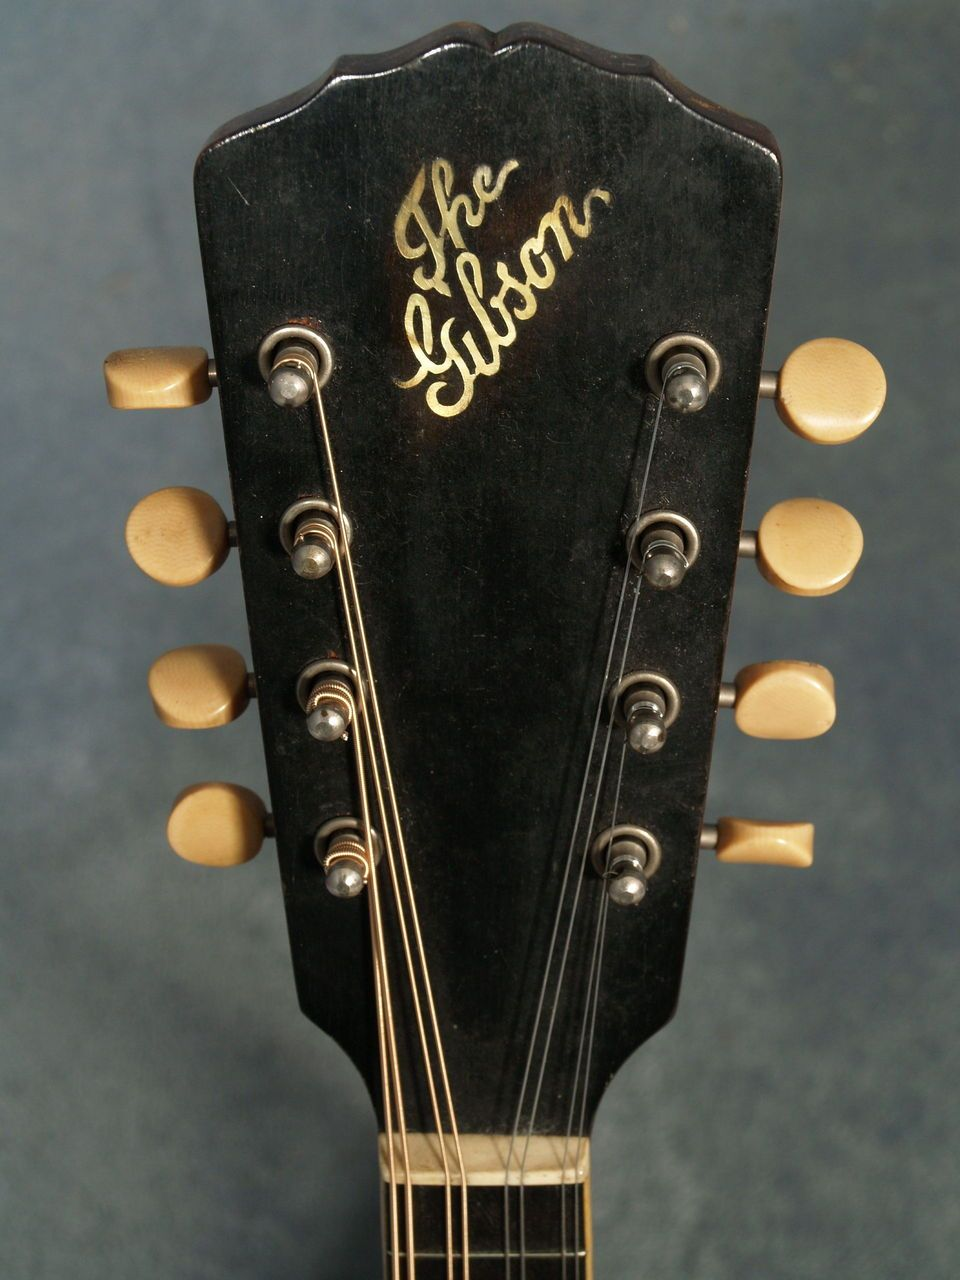 The Gibson    headstock from a 1913 - A1 mandolin | Gibson